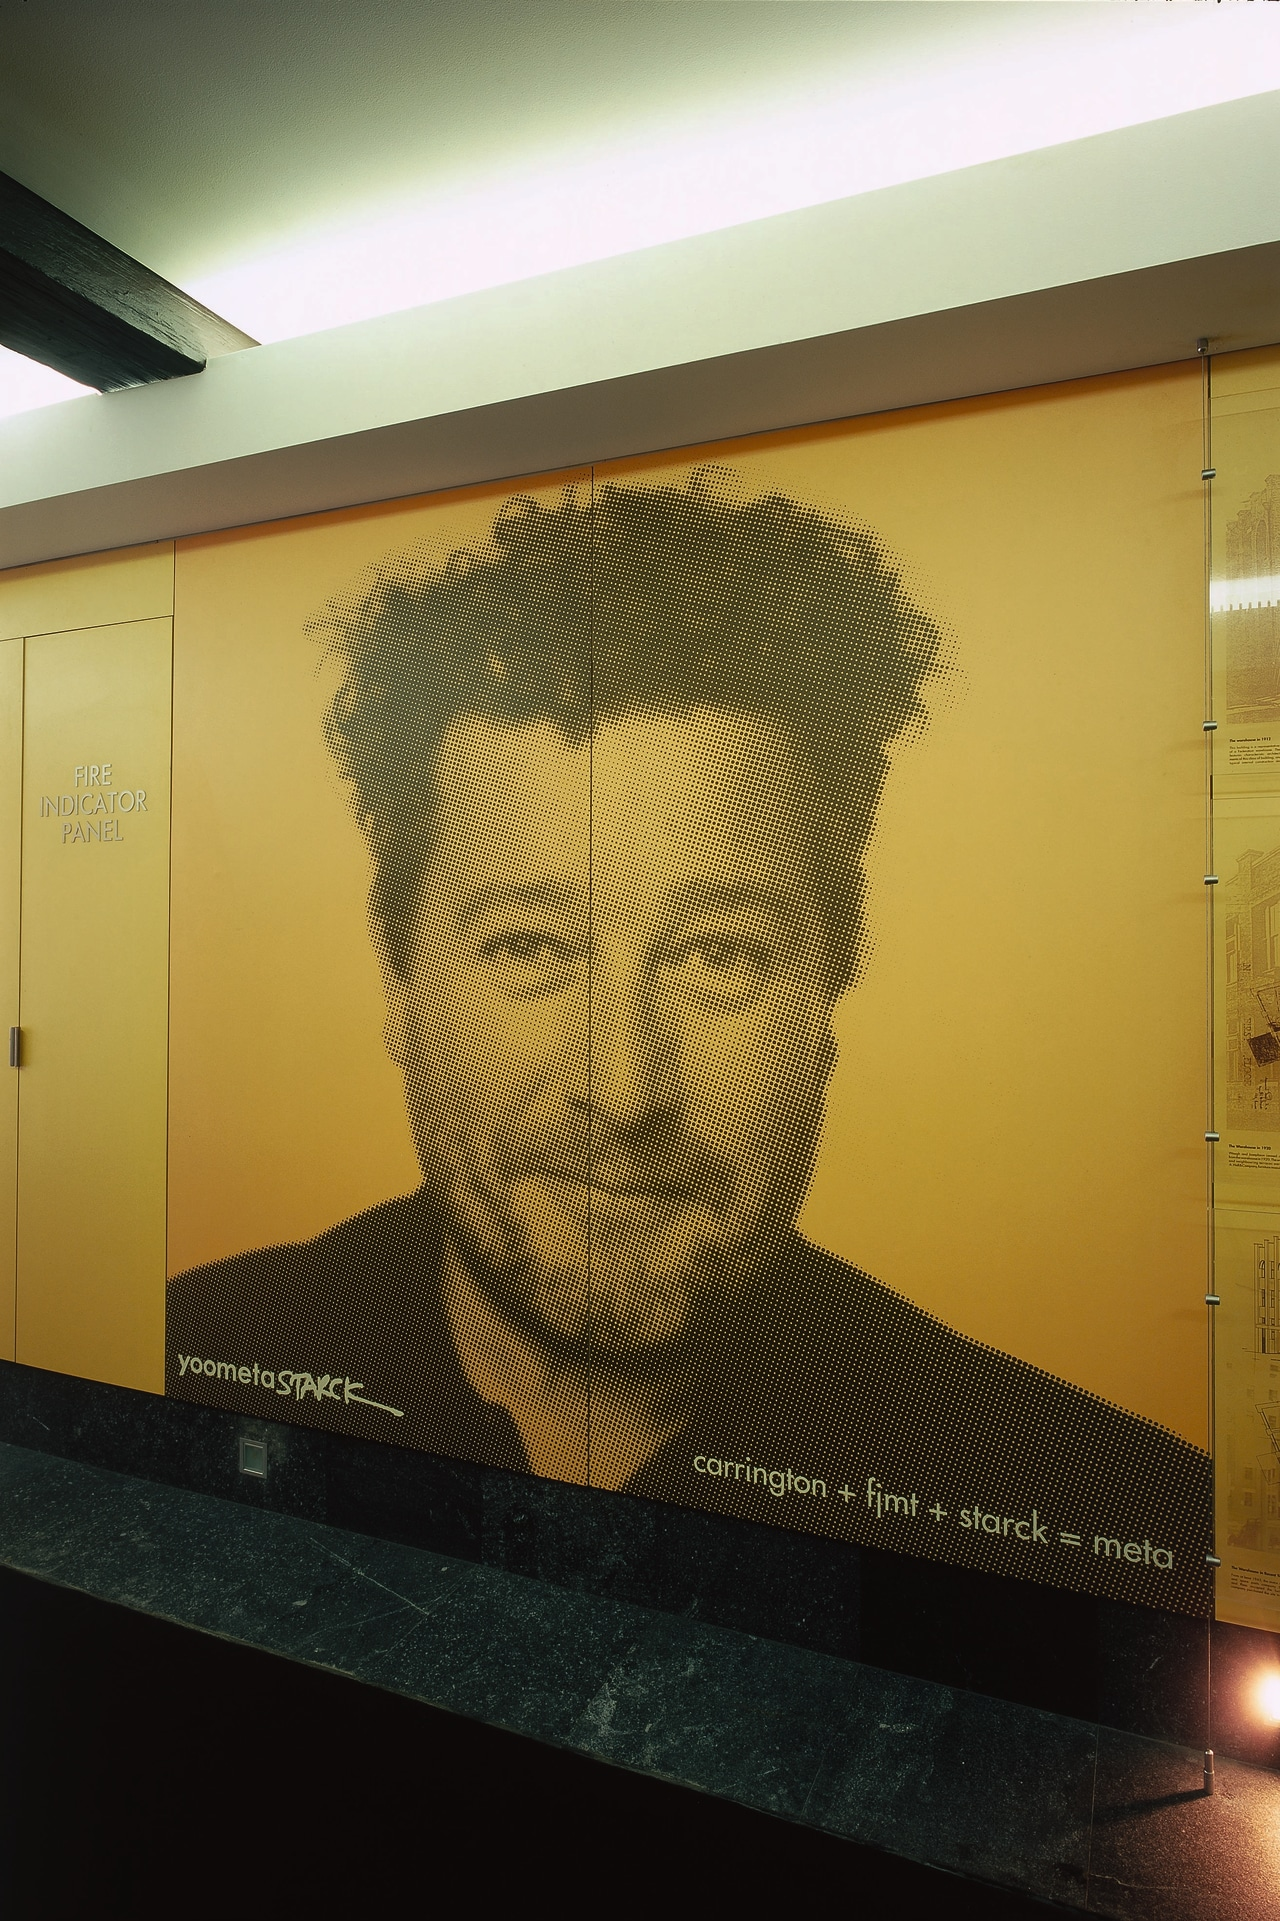 view of the fusion laminate wall surface art, design, facial hair, snapshot, wall, yellow, brown, orange